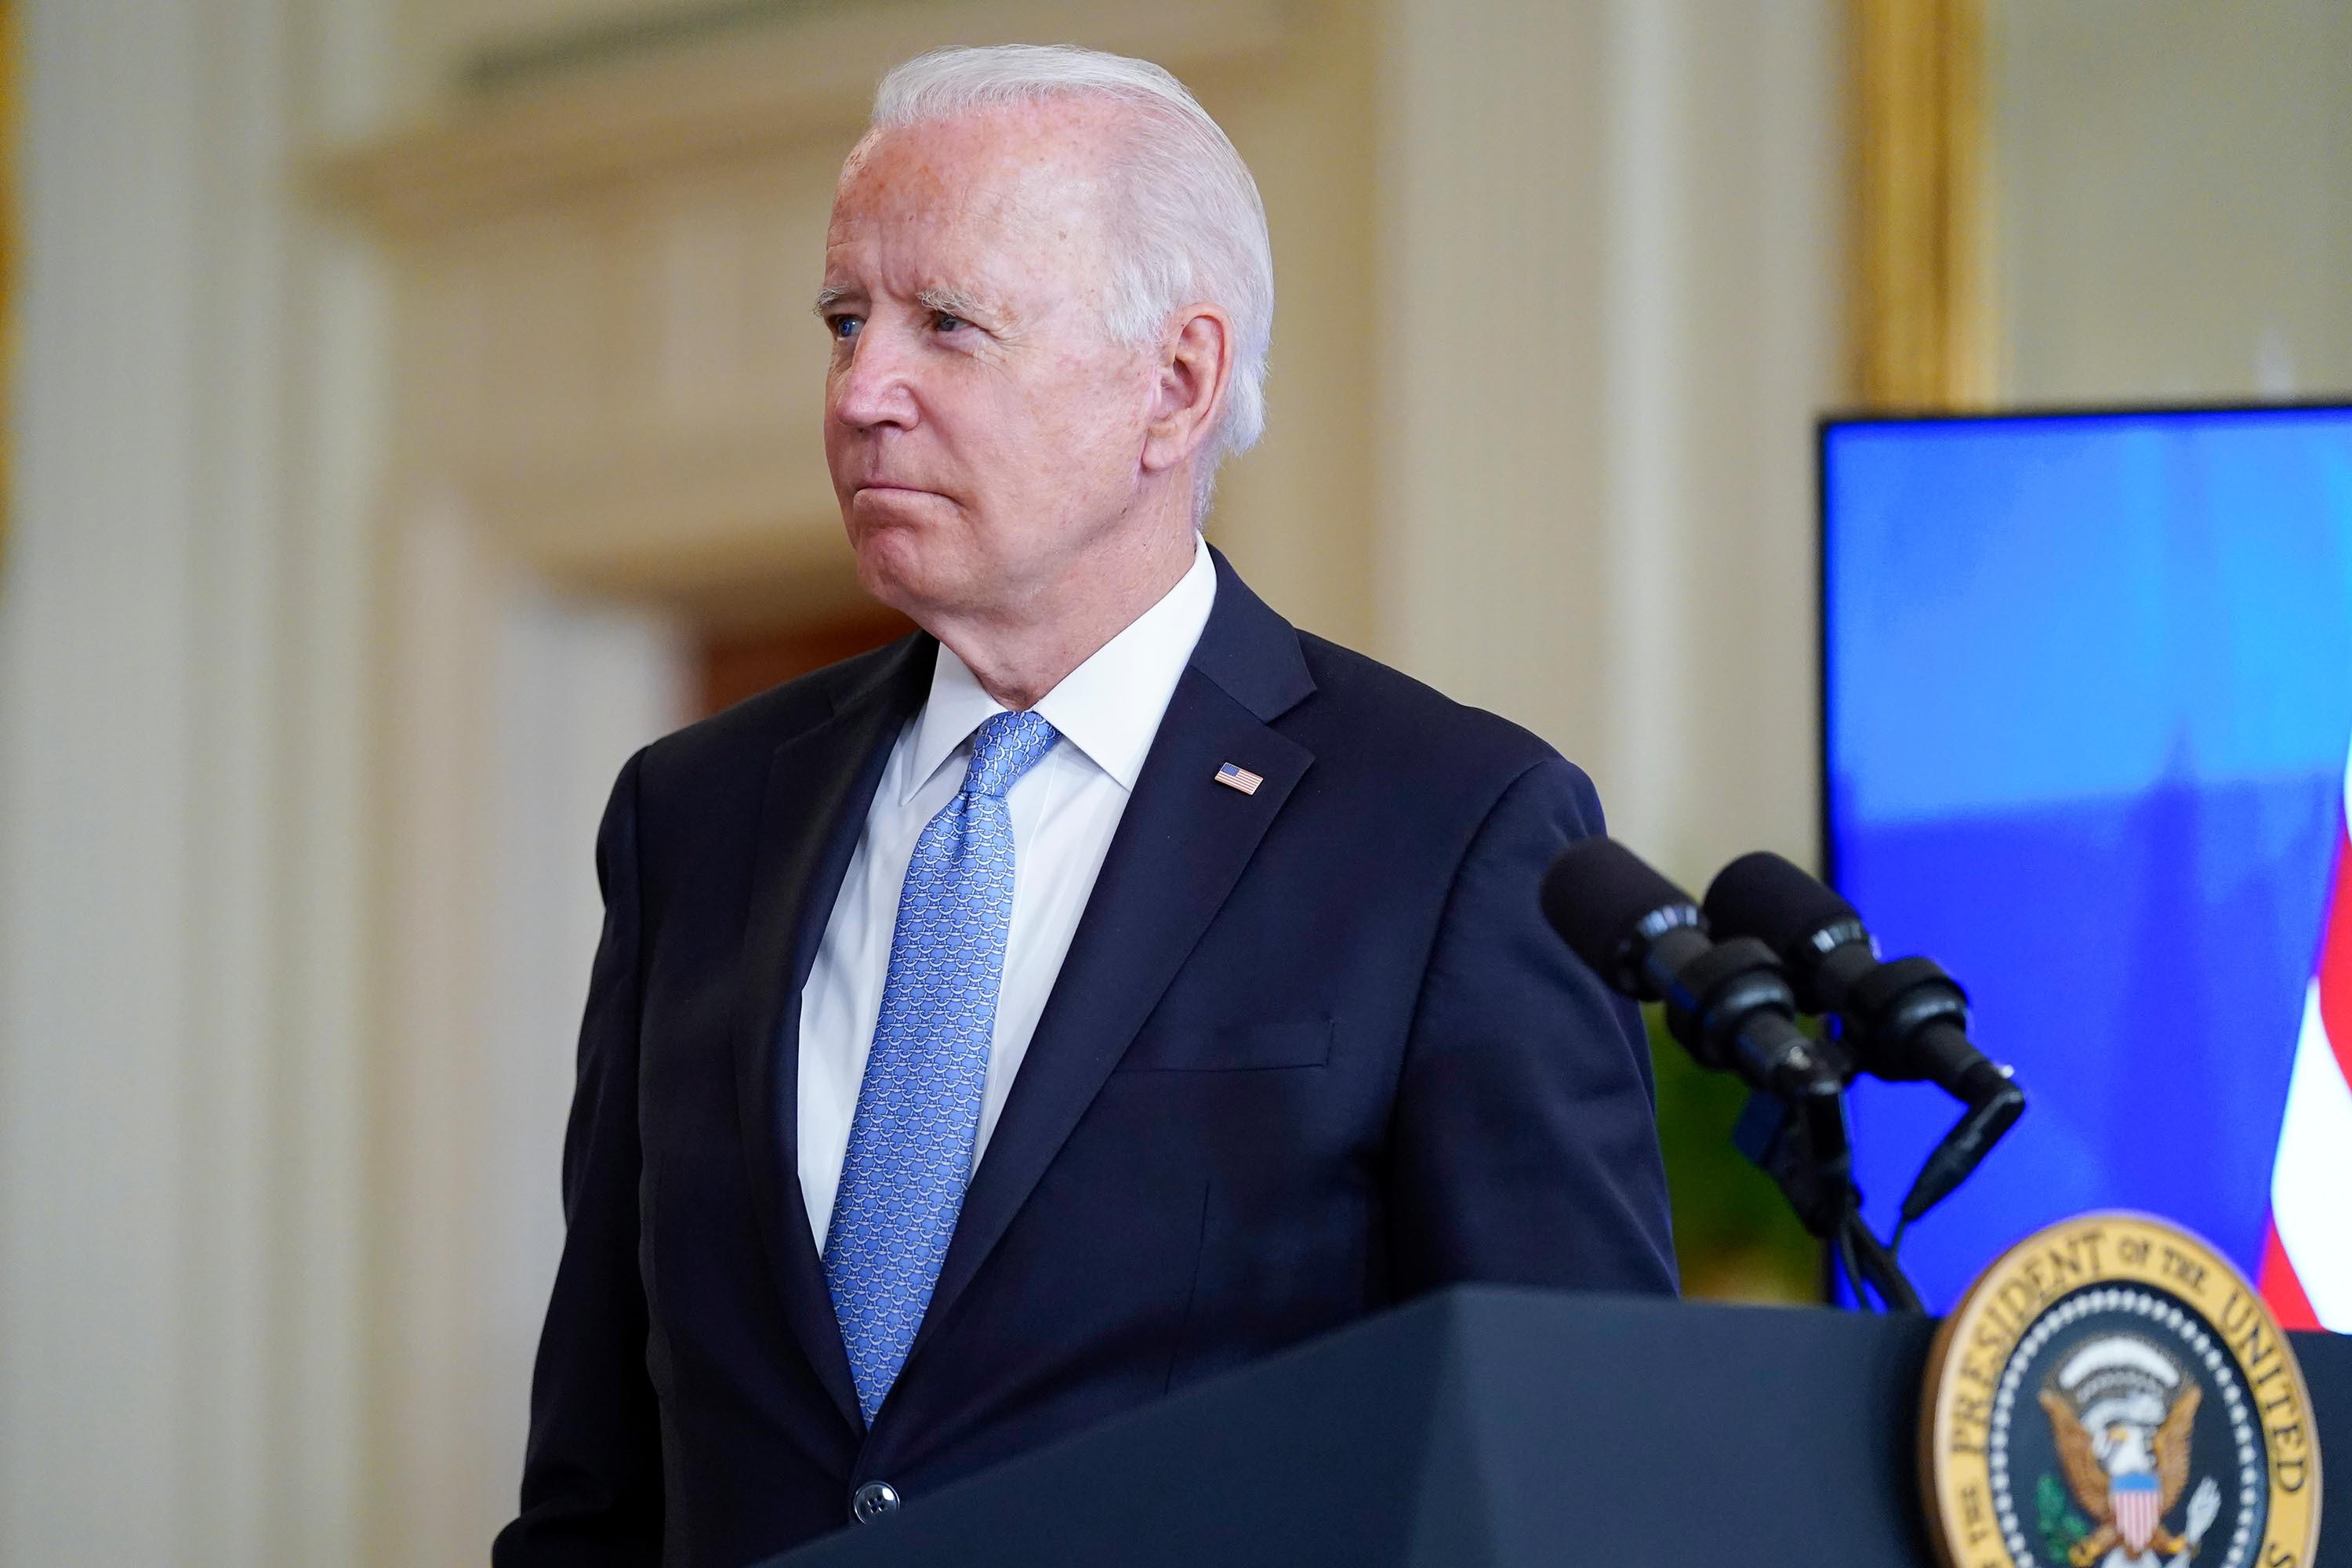 Biden says Republican governors undermining his vaccine mandates are putting lives at risk